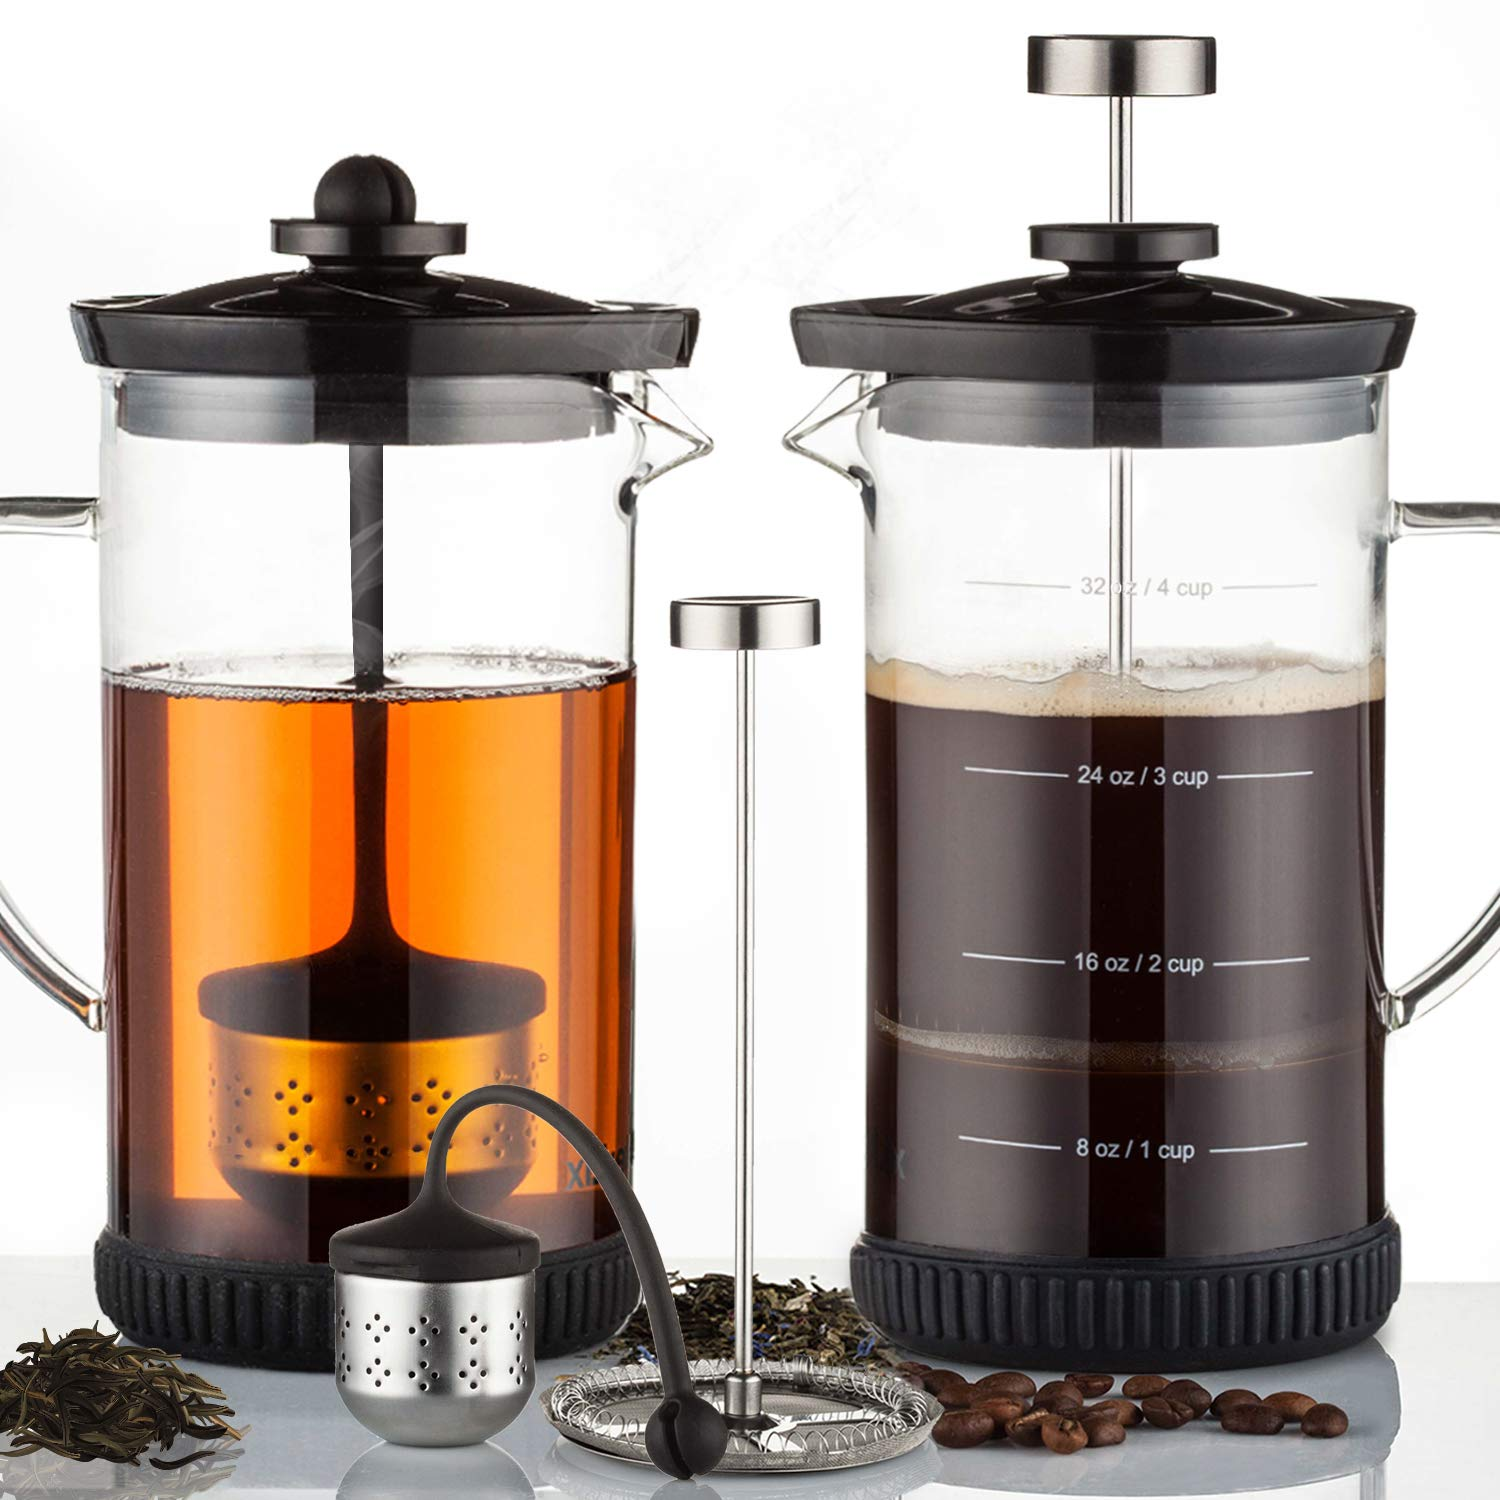 POWERLIX French Press Coffee Maker - Best Coffee Press for Coffee & Loose Tea, Includes Heat Resistant Borosilicate Glass, Stainless Steel Carafe- Fabulous 2 In 1 Coffee & Tea Maker, Dishwasher Safe by POWERLIX